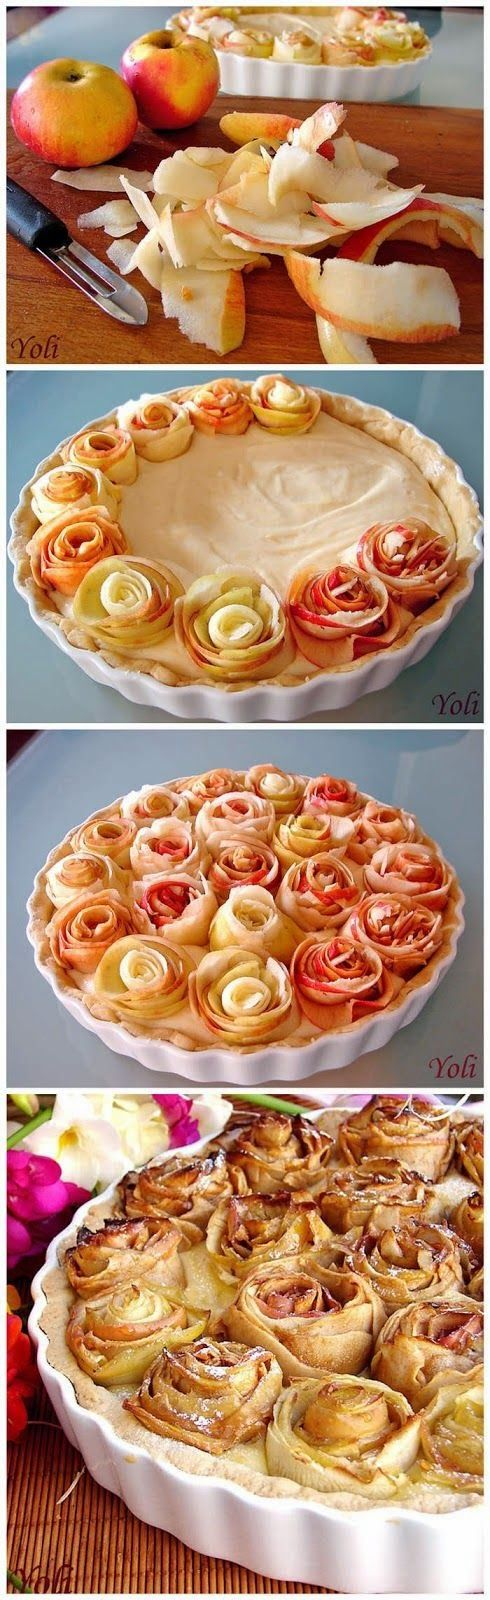 Apple pie with roses. TORTA CON ROSE DI MELA.